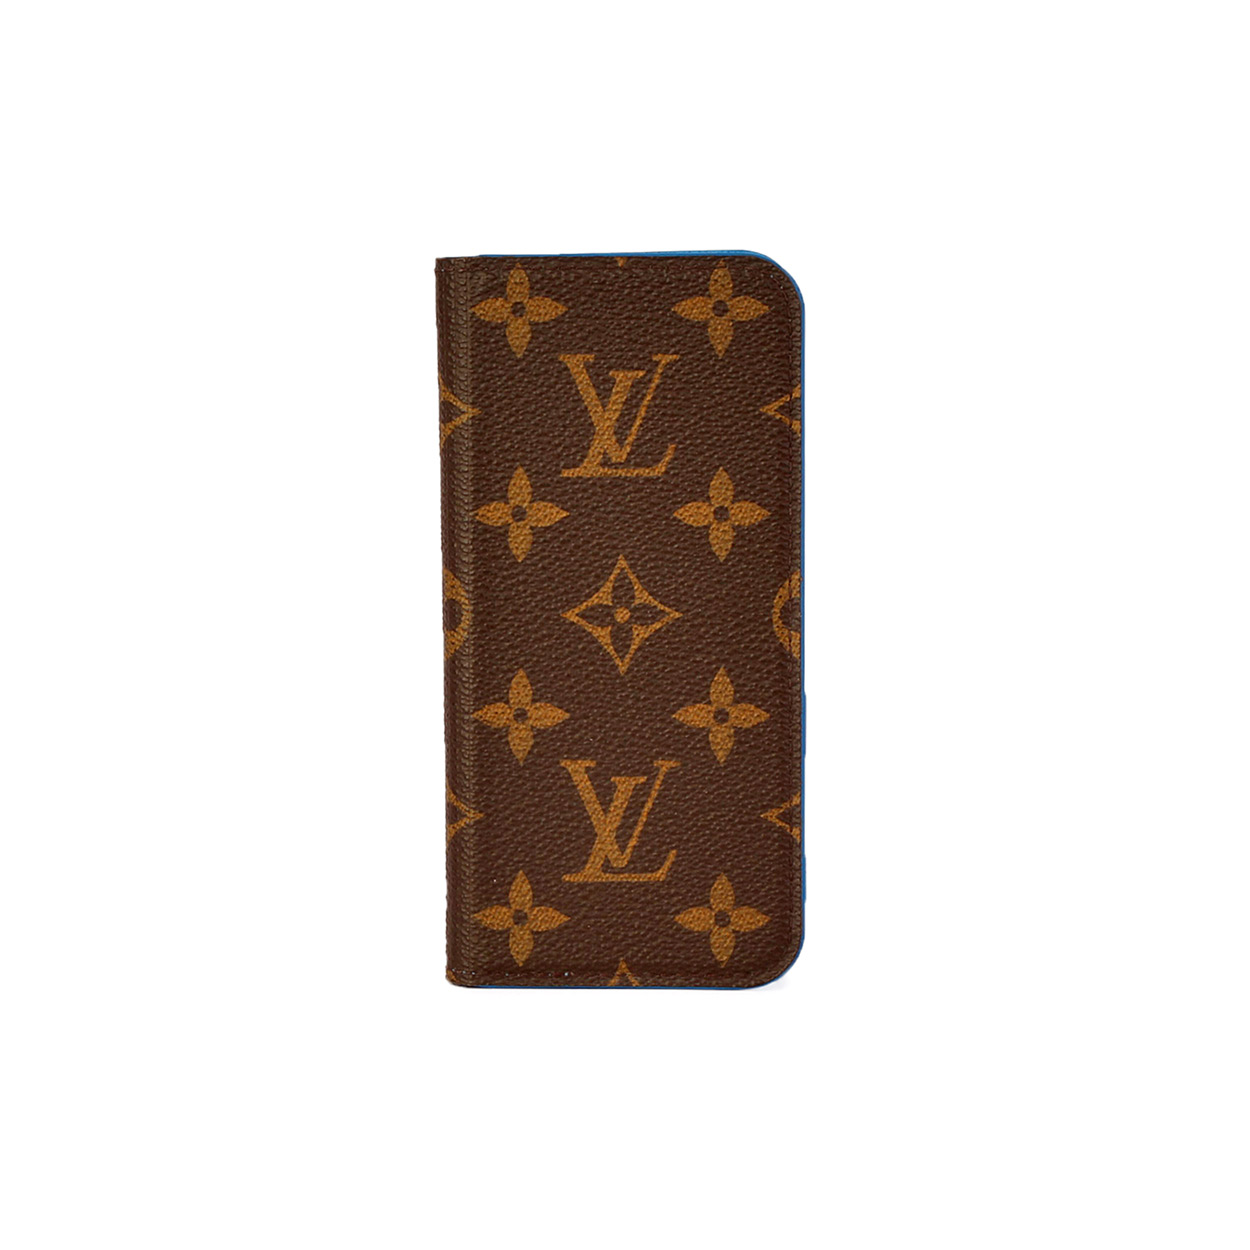 LOUIS VUITTON Monogram iPhone 6 Cell Phone Pouch - Luxity